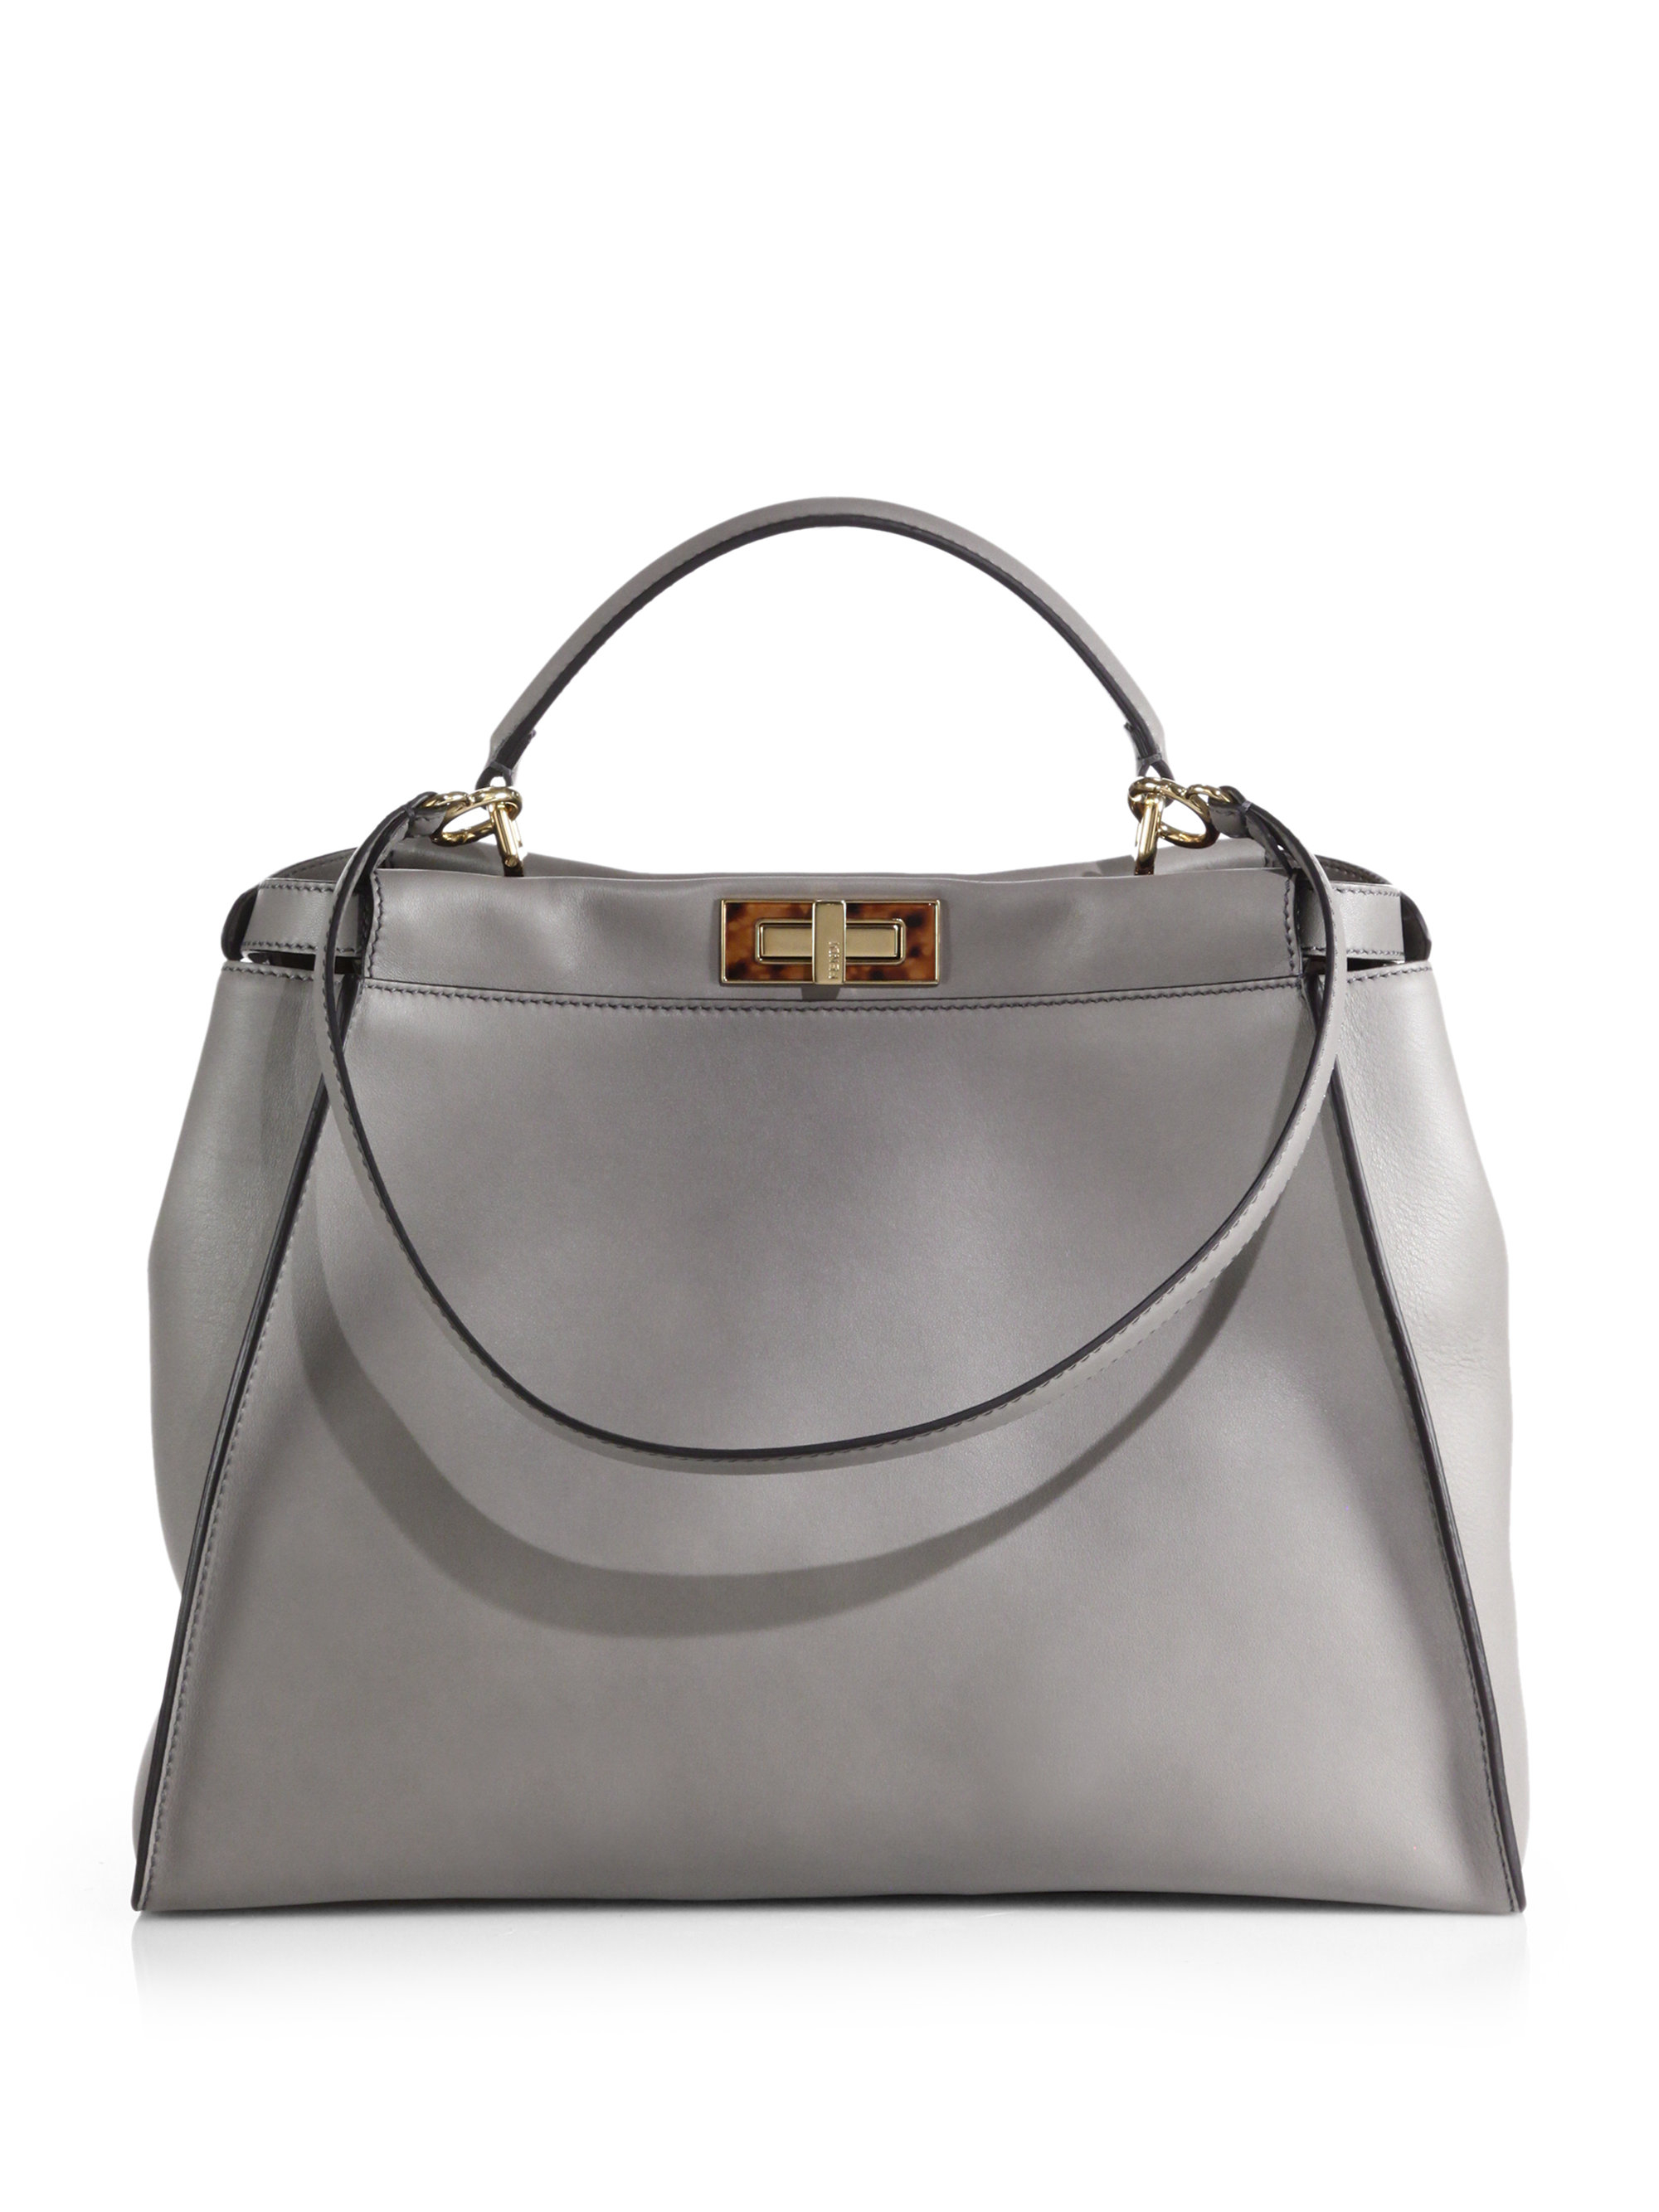 b3683b2083 Lyst - Fendi Large Peekaboo Satchel in Gray